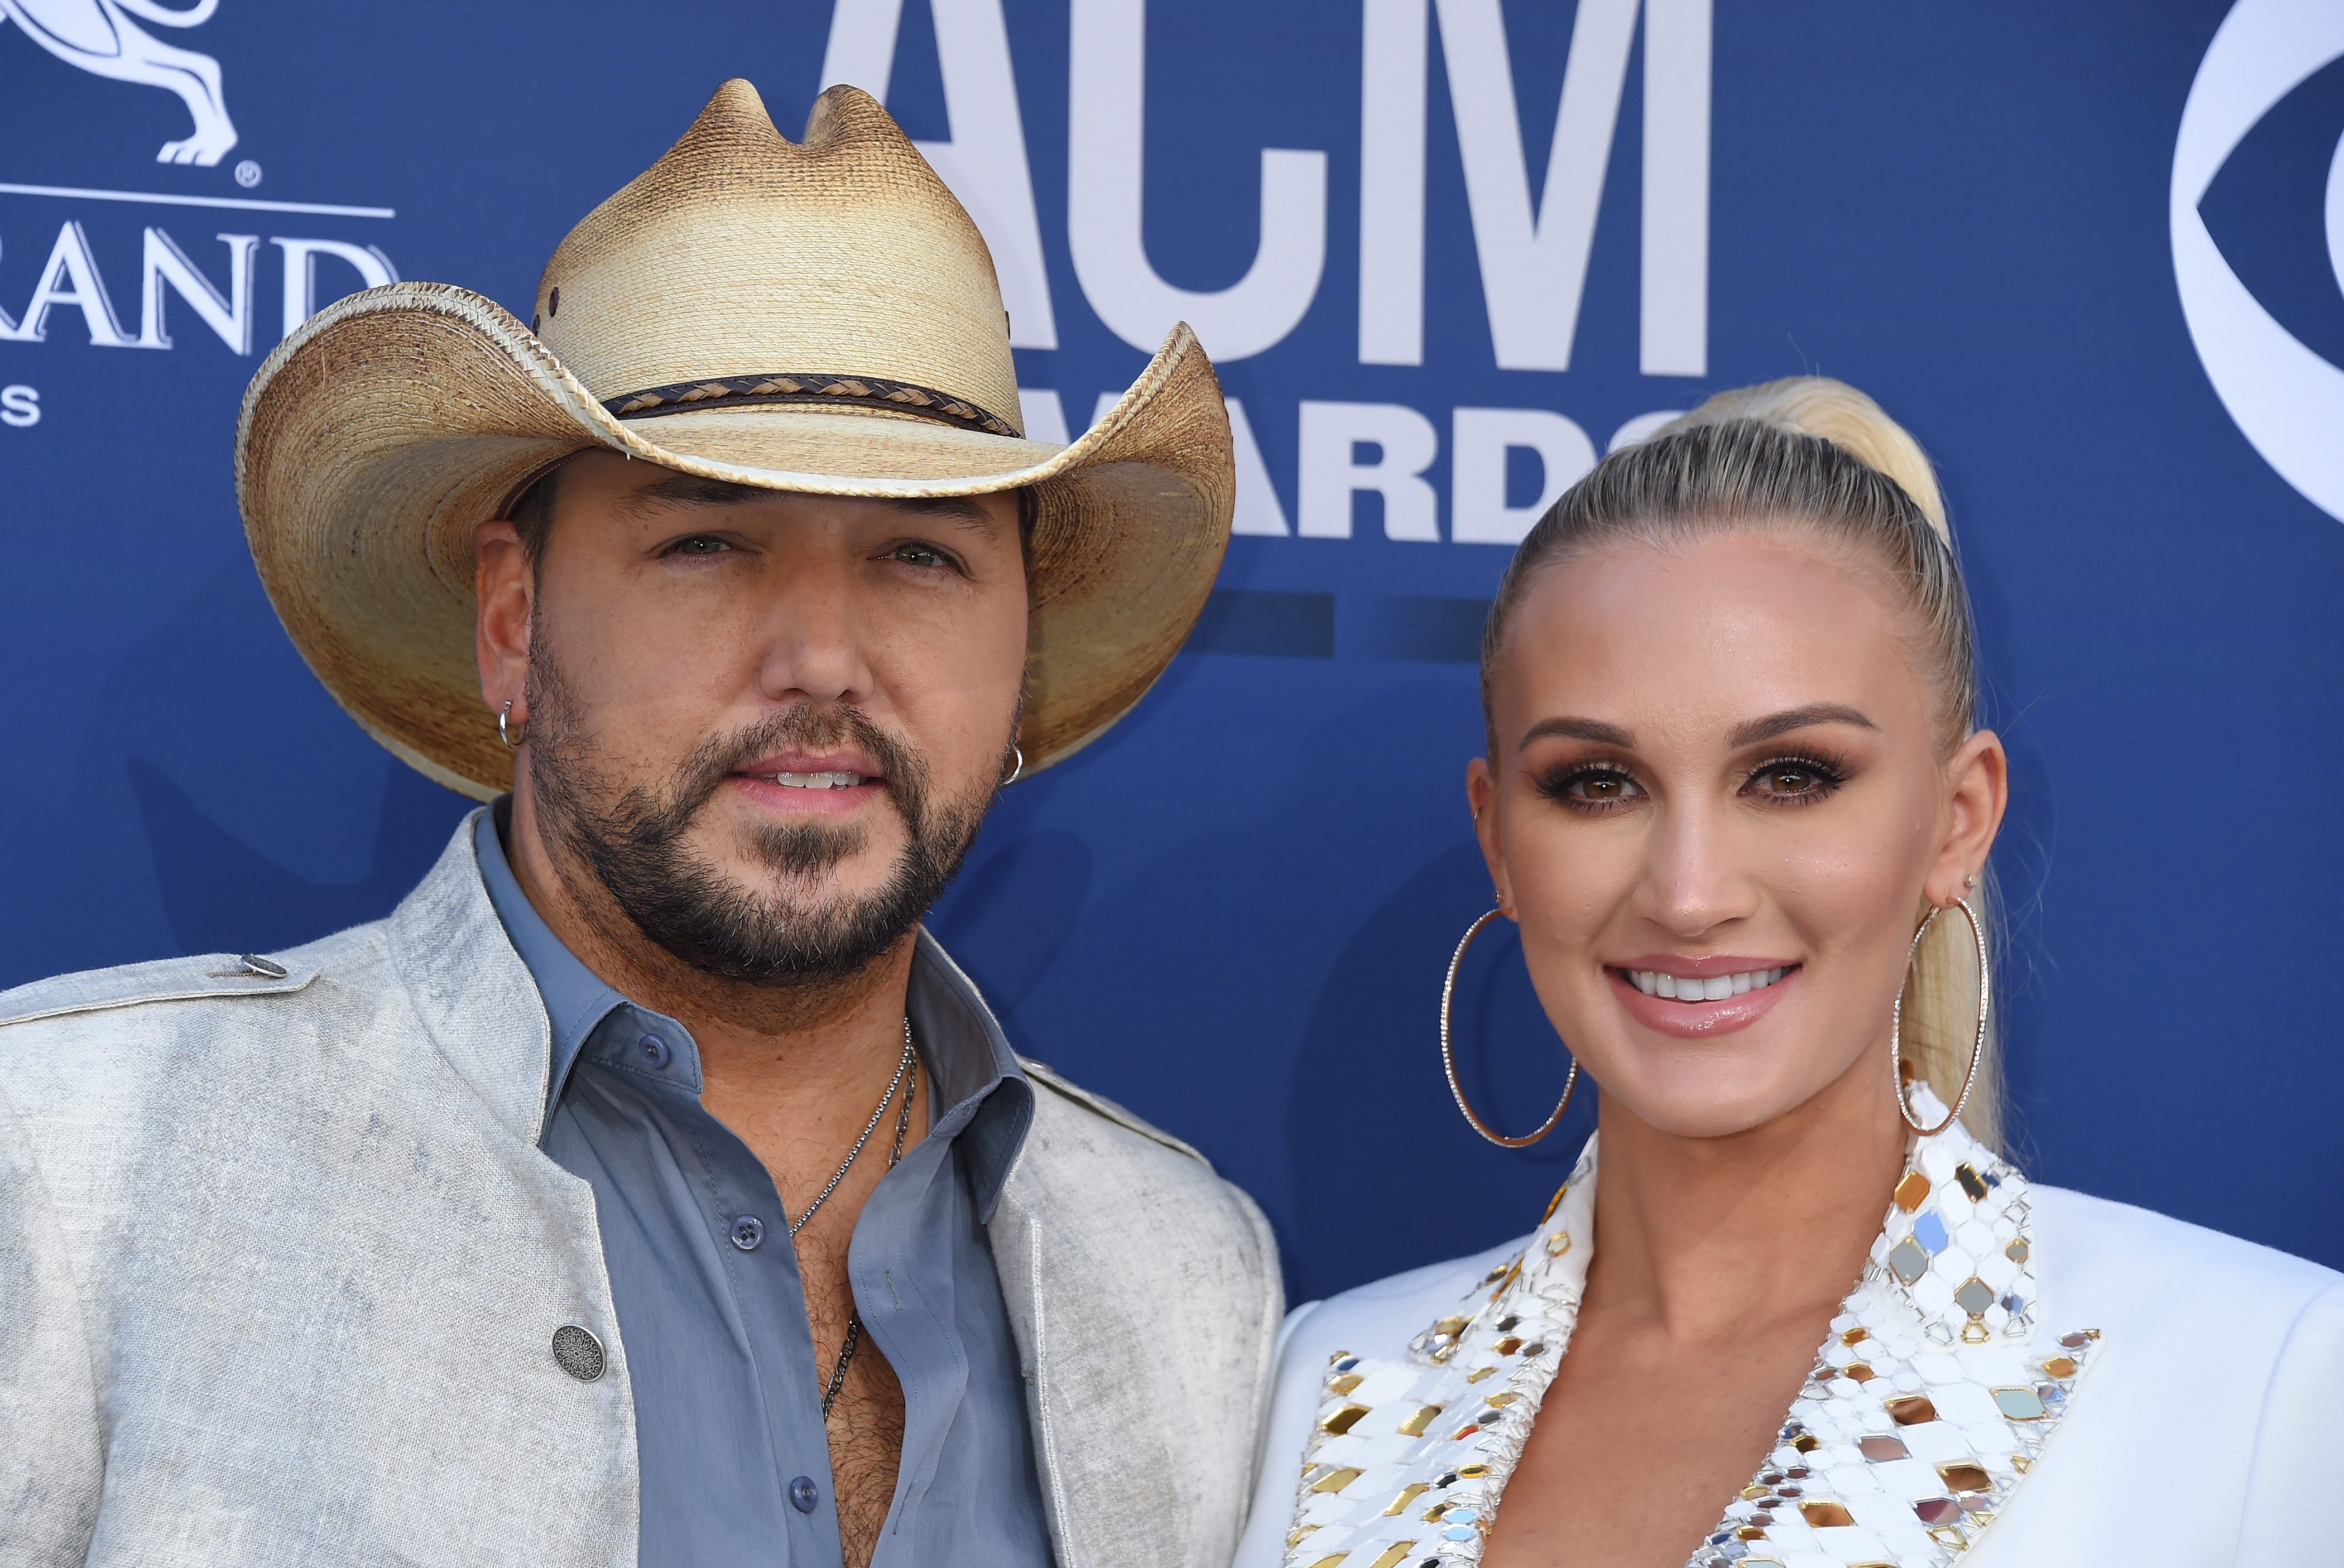 Jason Aldean And Family Dress Up In Hilarious 'Tiger King' Halloween Costumes